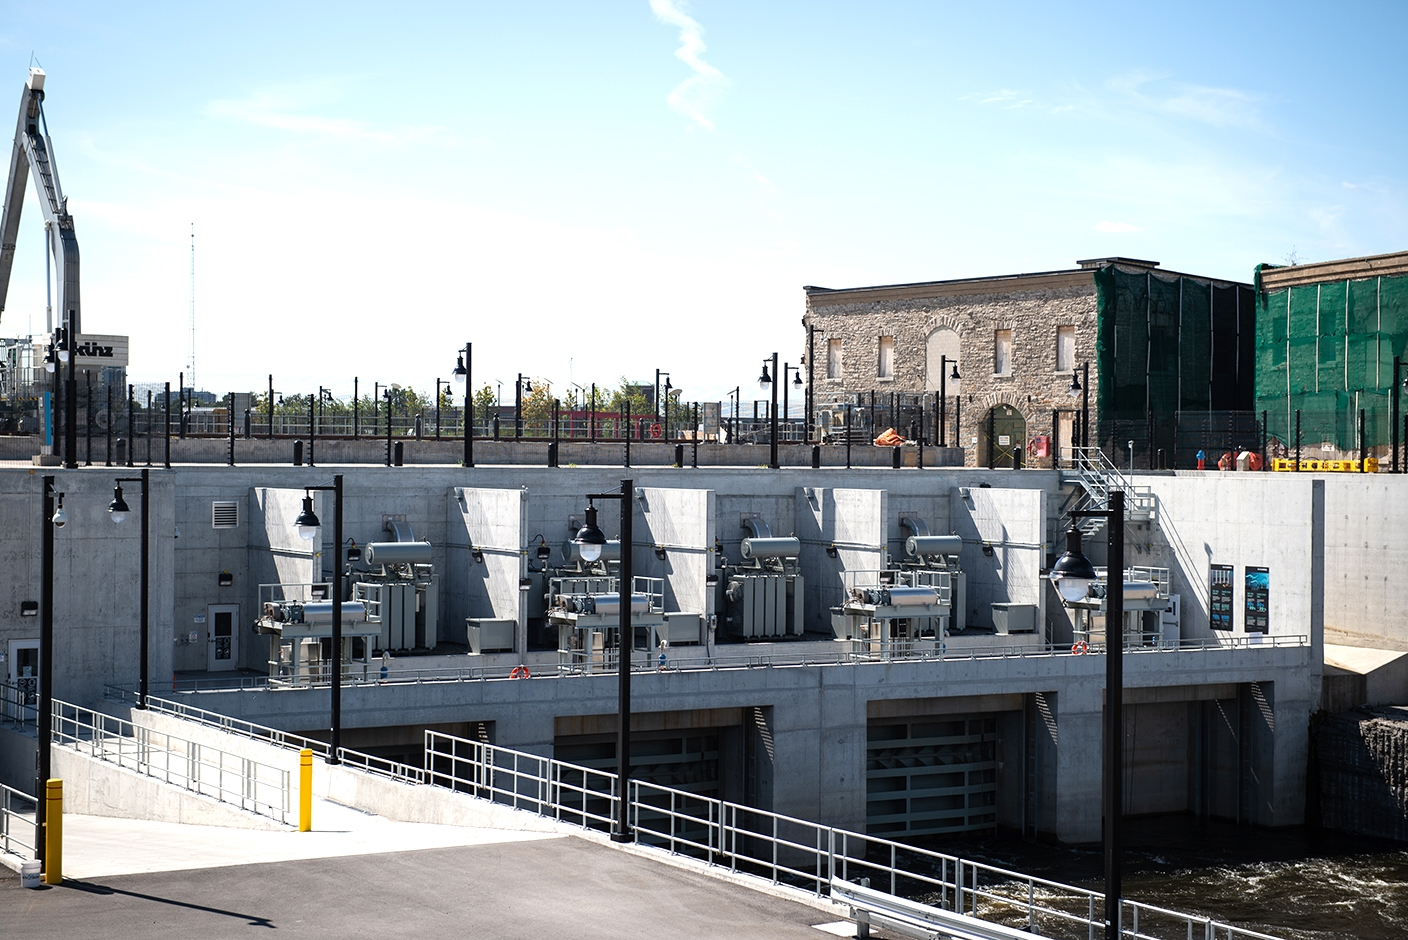 Chaudière Falls Powerhouse (Generating Station No. 5)